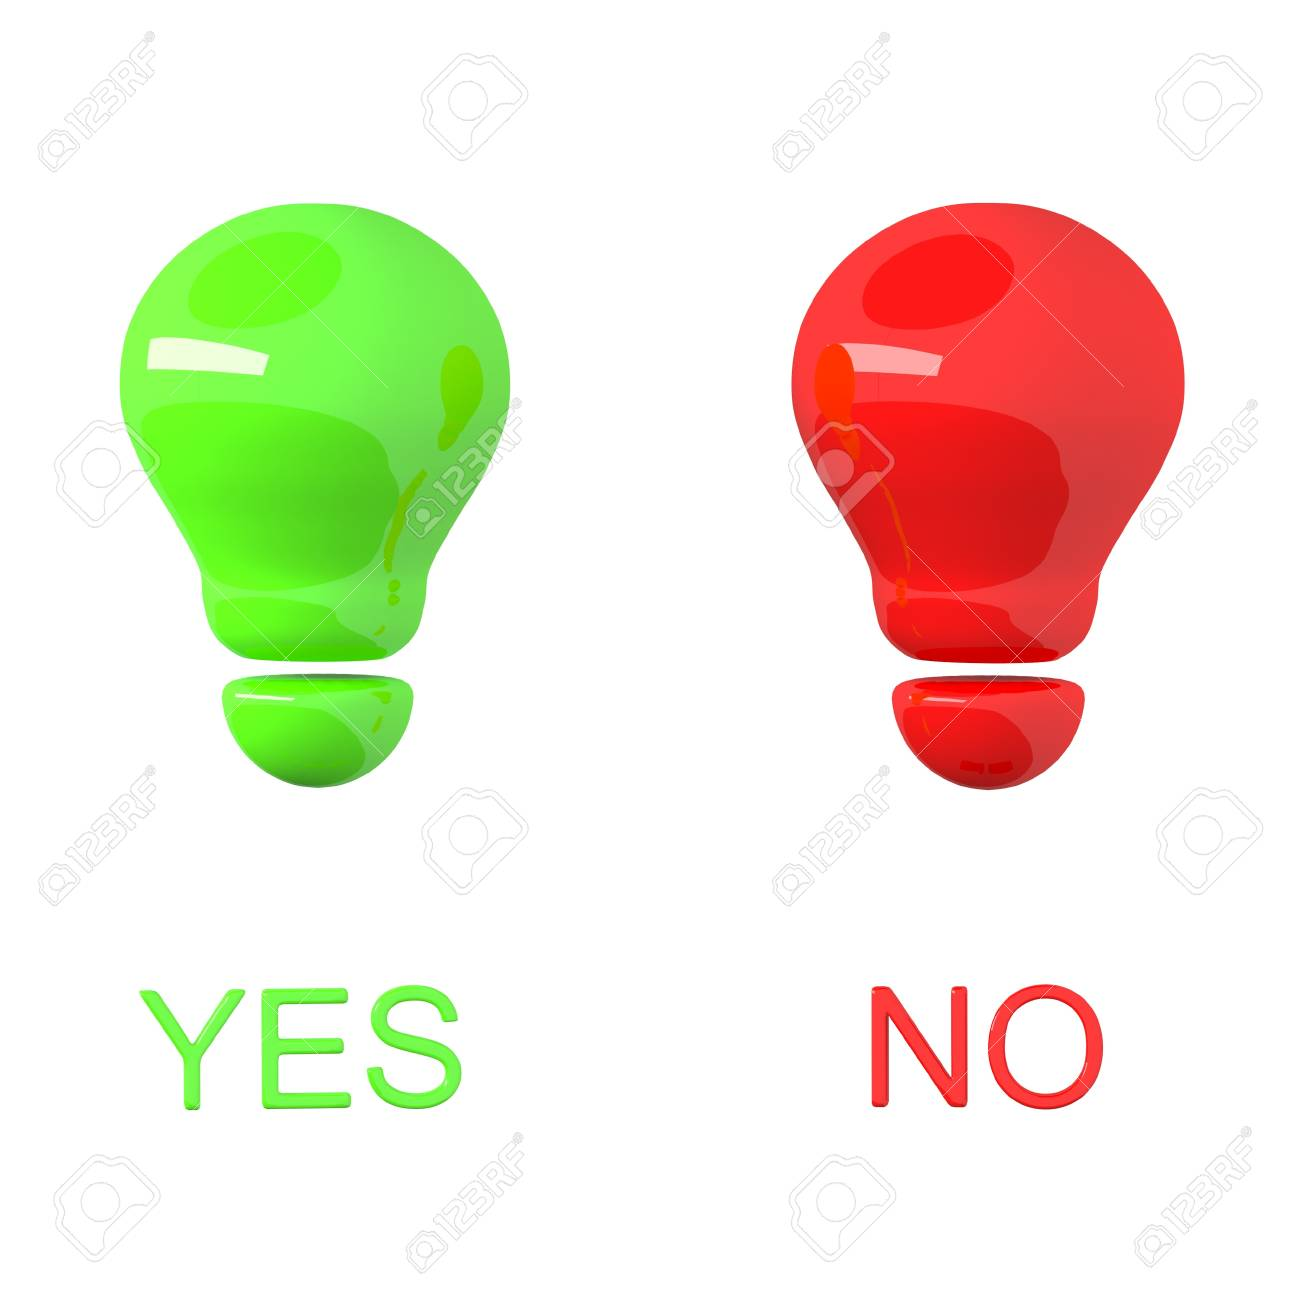 Yes and no as glossy green and red bulbs isolated Stock Photo - 20404159